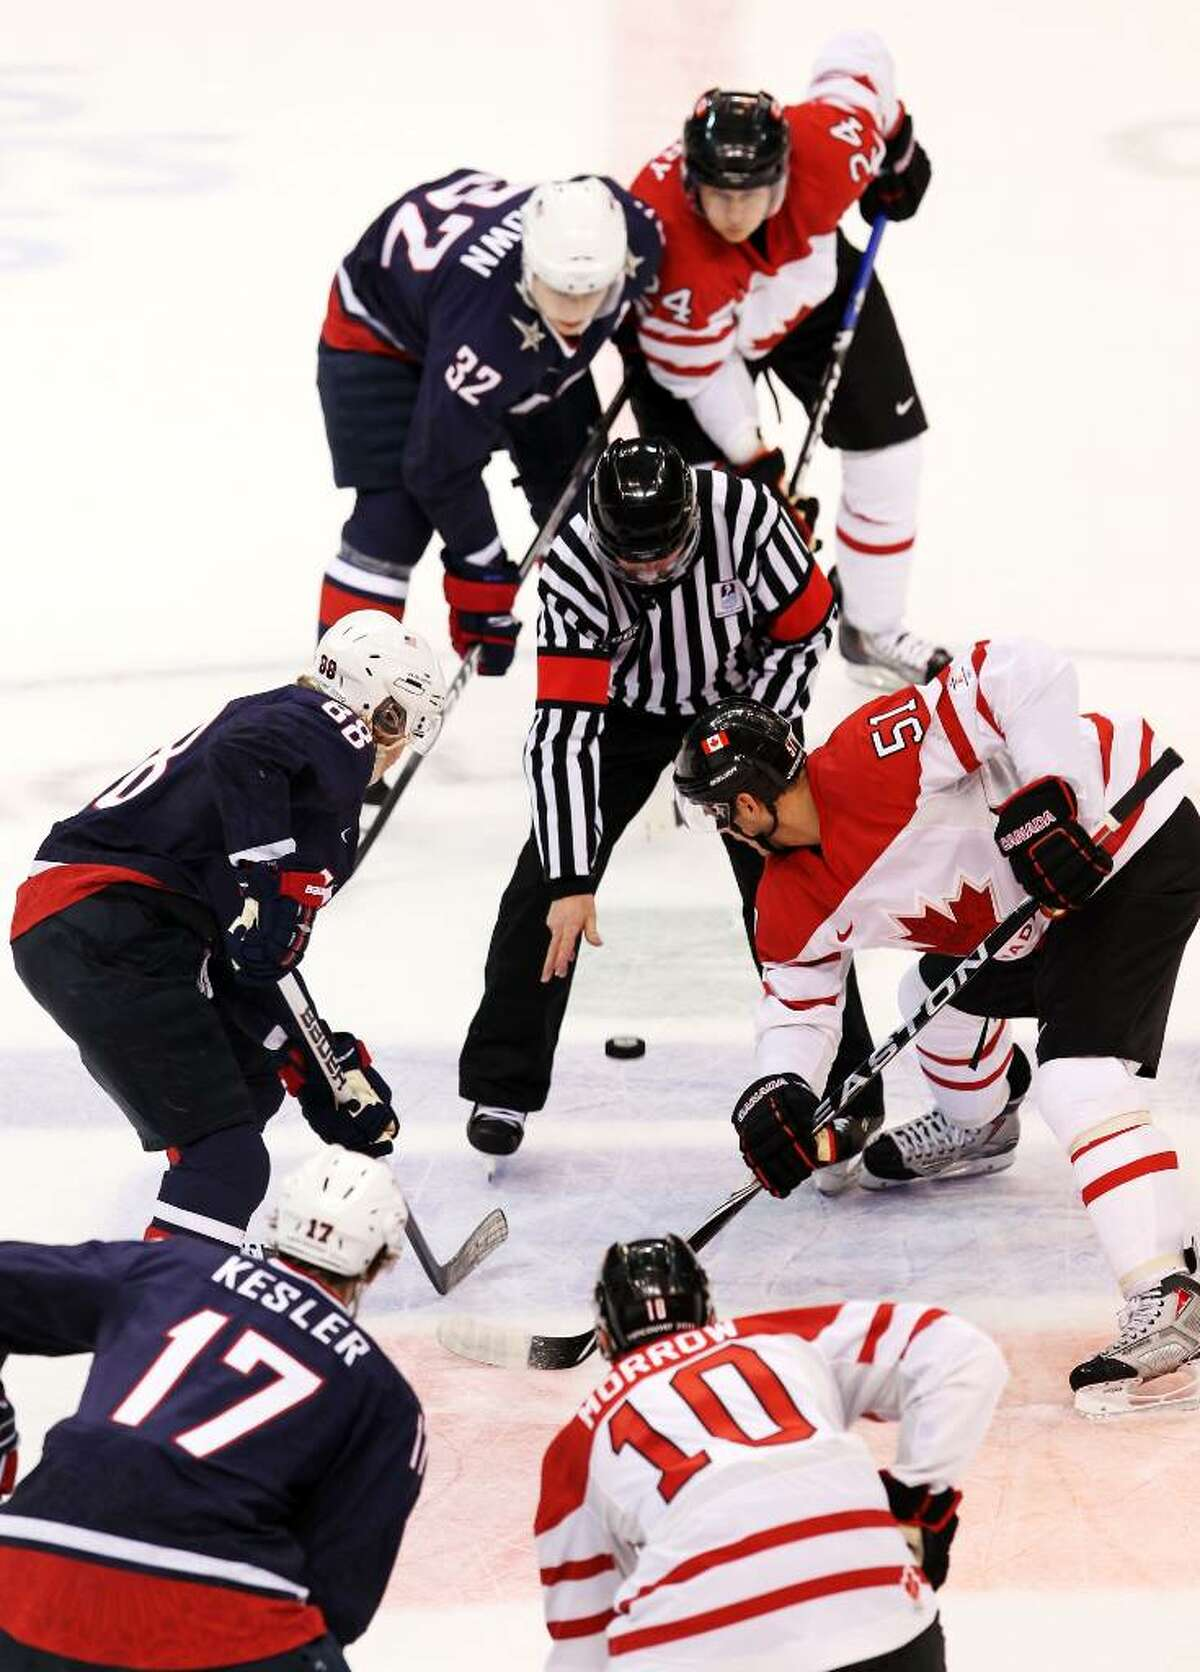 VANCOUVER, BC - FEBRUARY 28: The Official drops the puck at a face off during the ice hockey men's gold medal game between USA and Canada on day 17 of the Vancouver 2010 Winter Olympics at Canada Hockey Place on February 28, 2010 in Vancouver, Canada. (Photo by Jamie Squire/Getty Images)